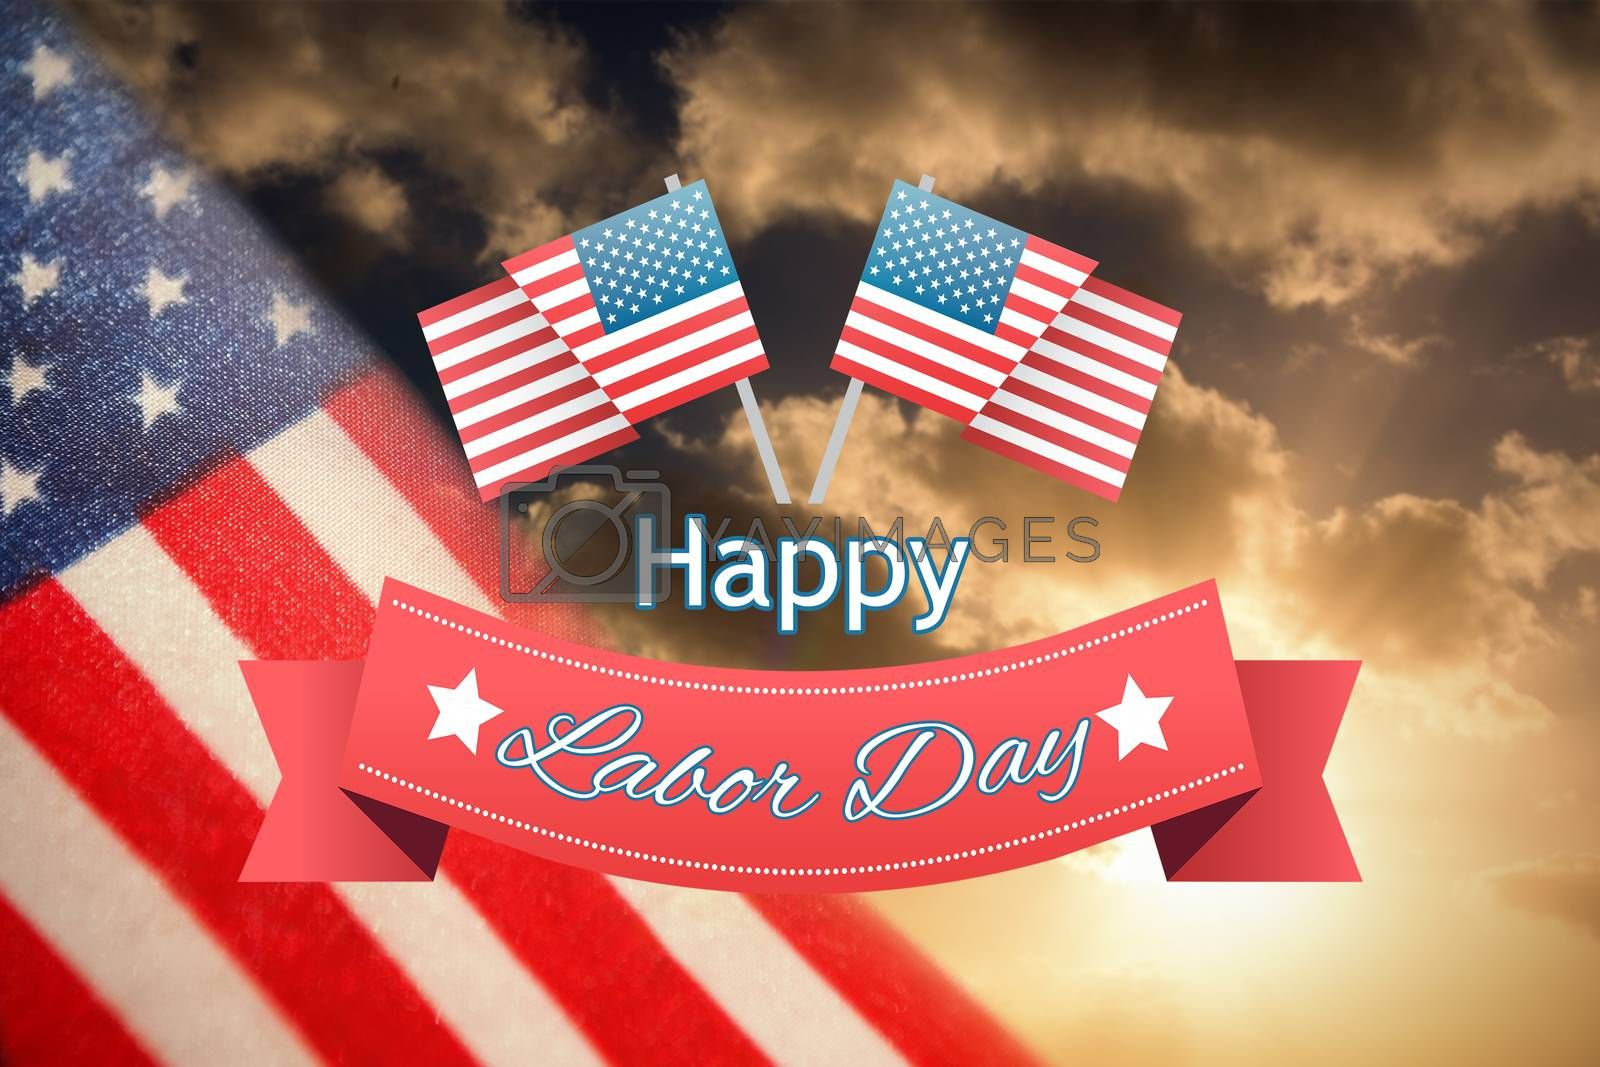 Composite image of happy labor day text badge with flags by Wavebreakmedia